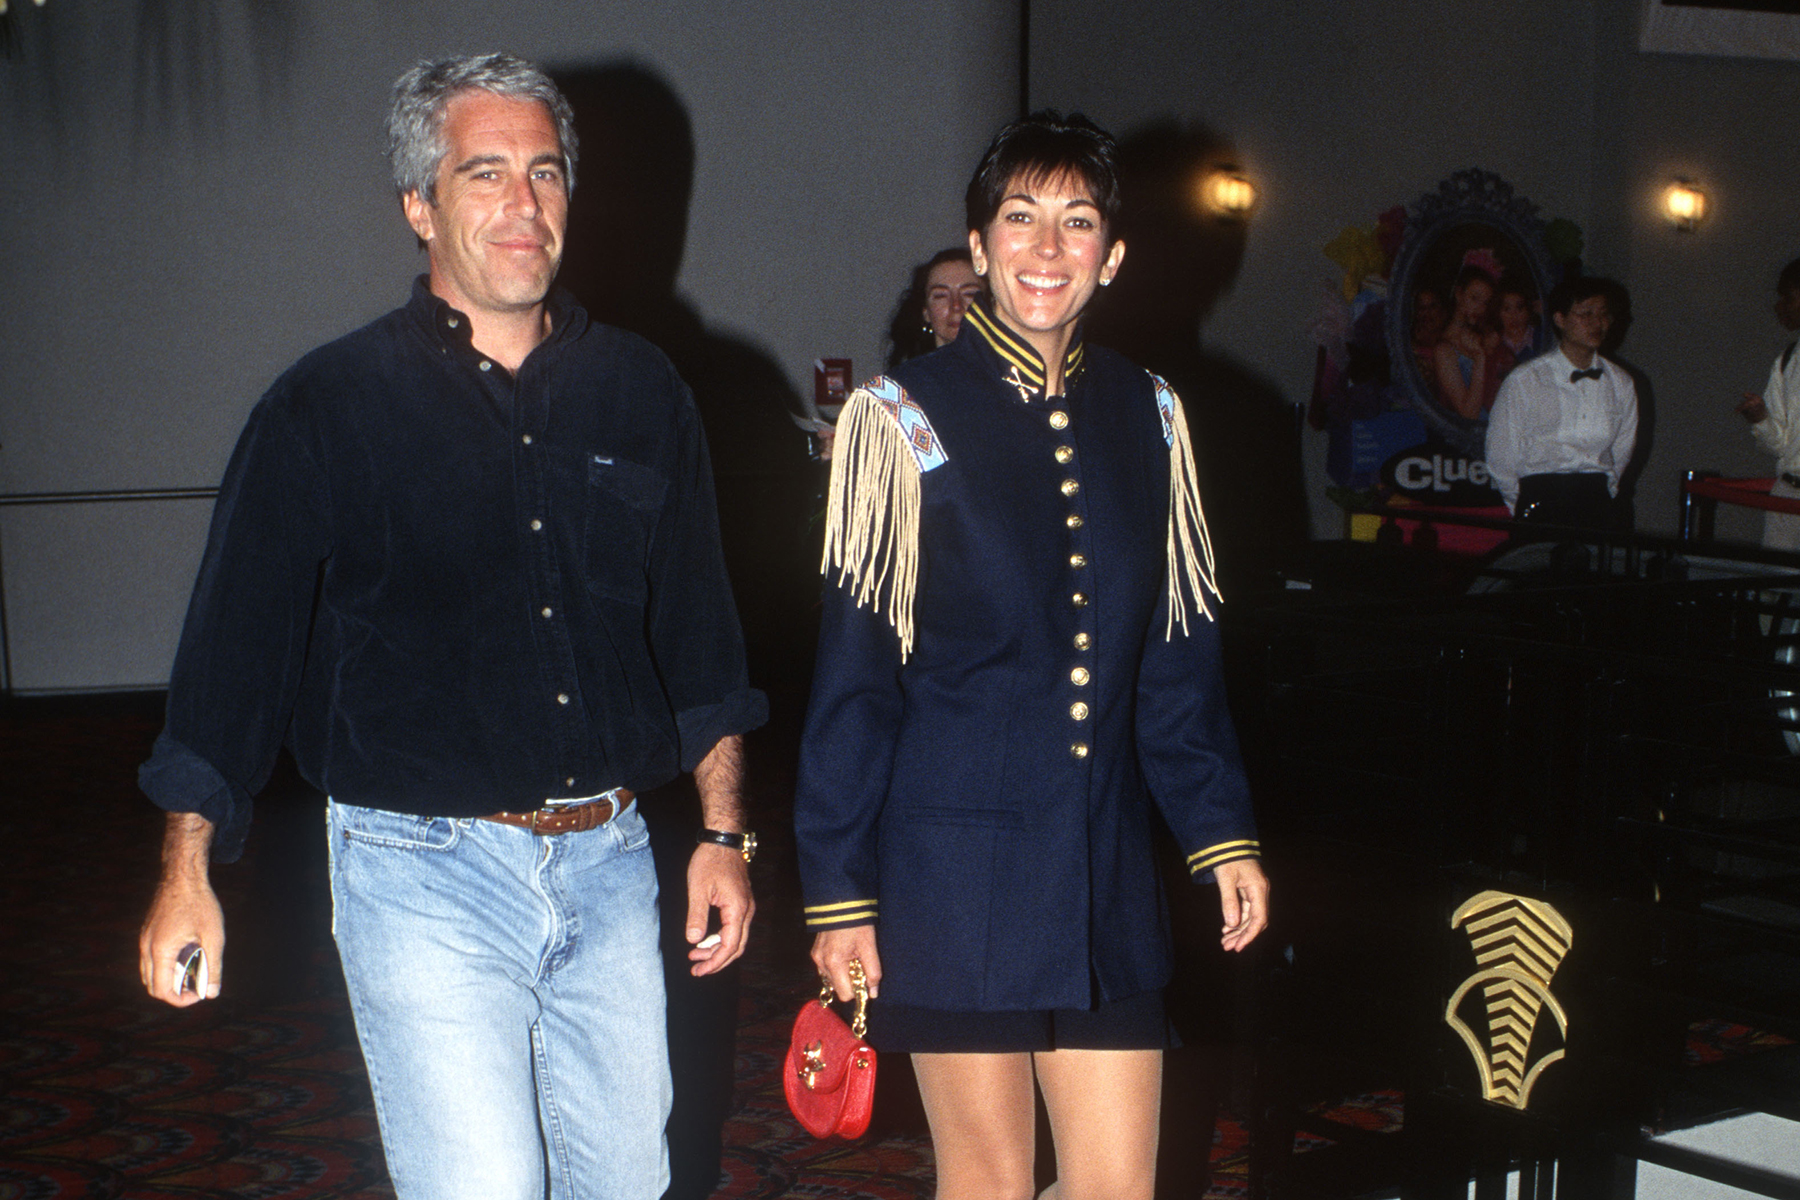 NEW YORK, NY - JUNE 13: Jeffrey Epstein and Ghislaine Maxwell attend Batman Forever/R. McDonald Event on June 13, 1995 in New York City. (Photo by Patrick McMullan via Getty Images)